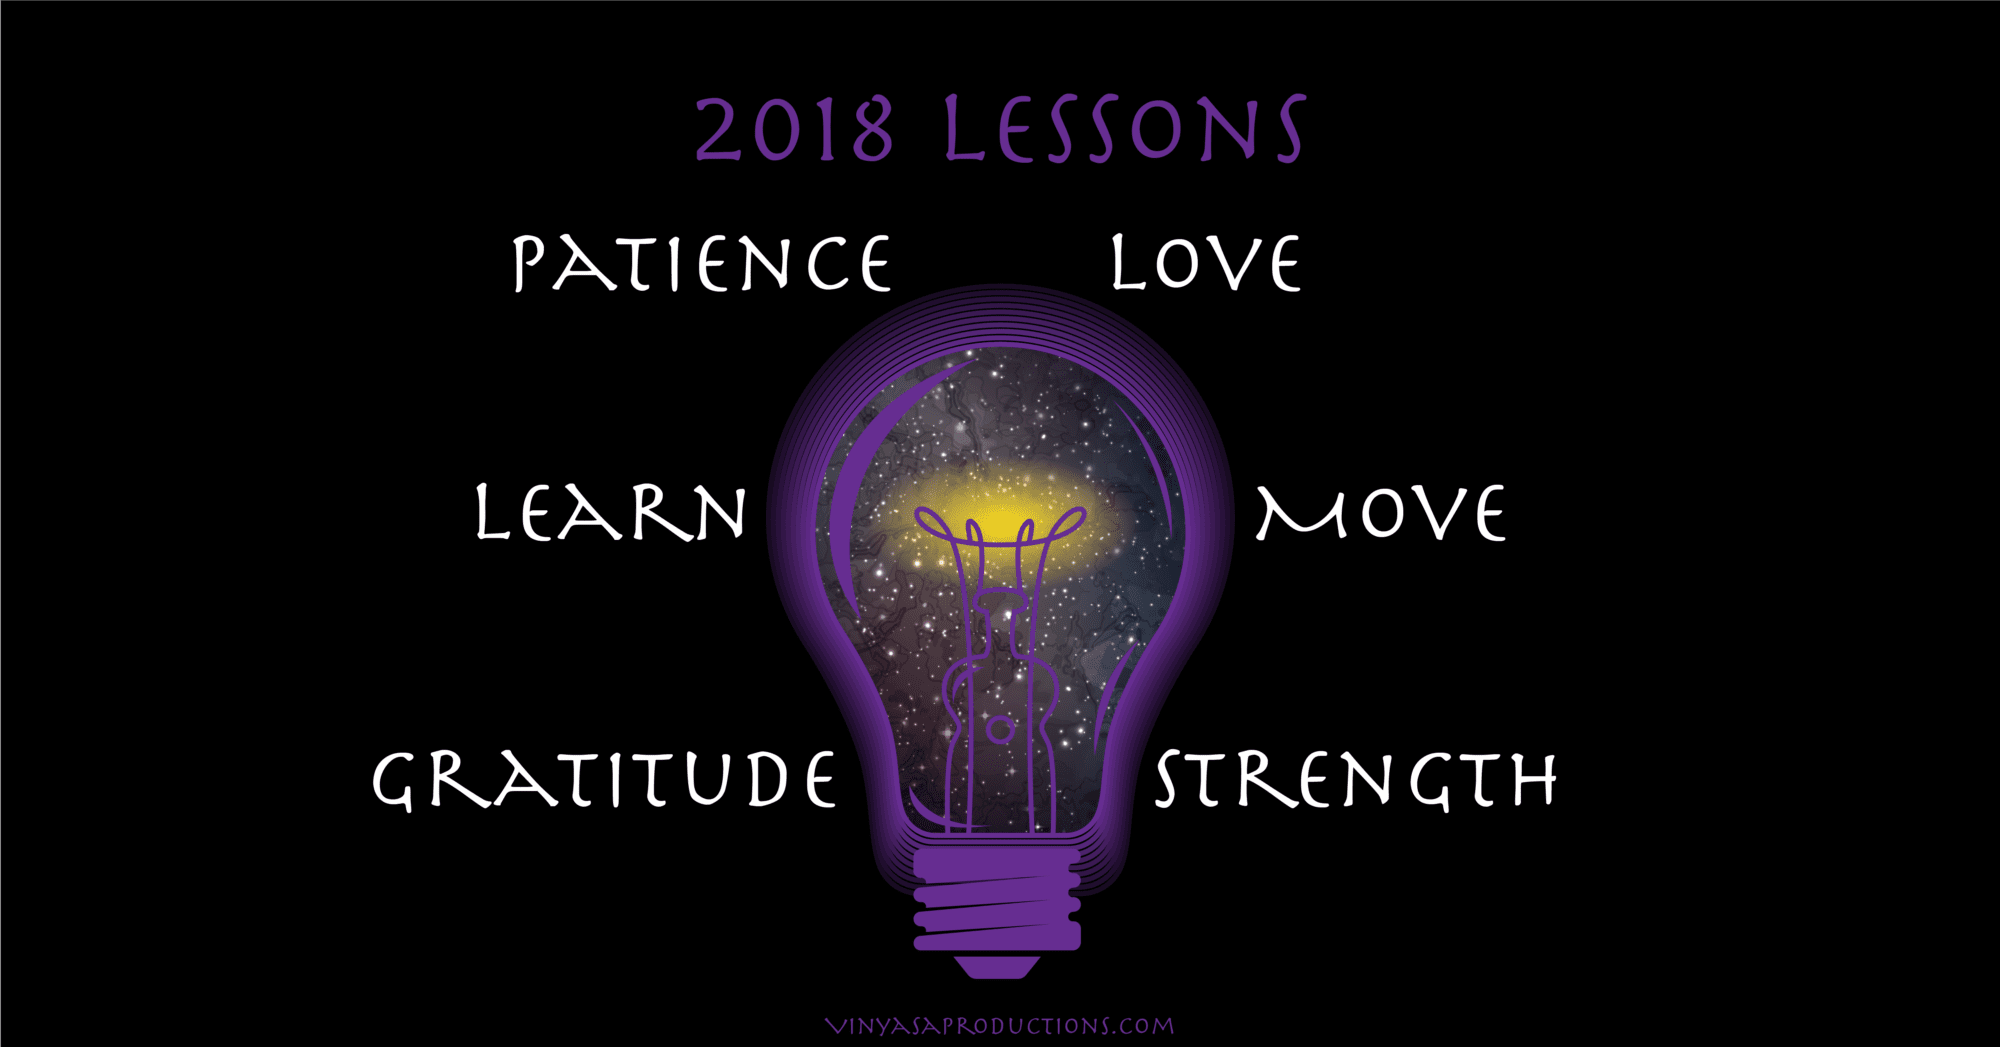 6 Lessons from 2018 | Saxcerpt | Vinyasa Productions